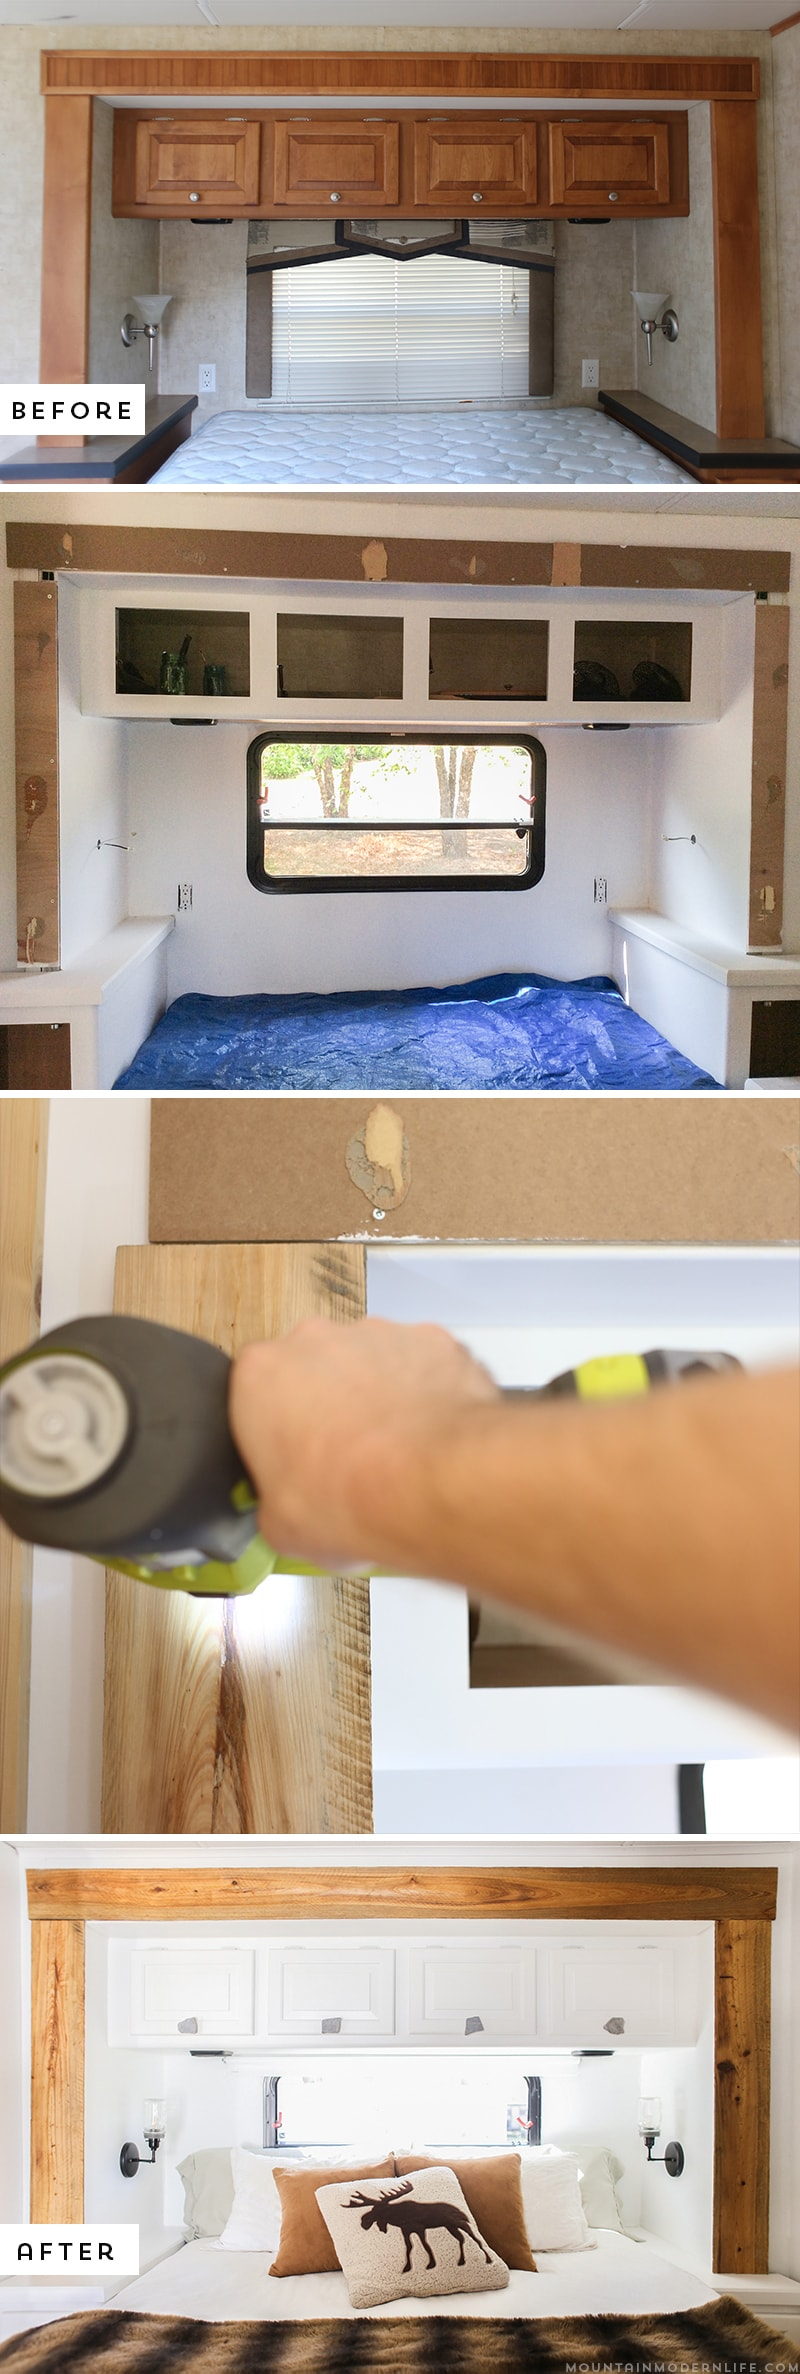 Looking for ways to add rustic character to your motorhome? Why not update the RV slide-out moulding? It's easier than you think! MountainModernLife.com